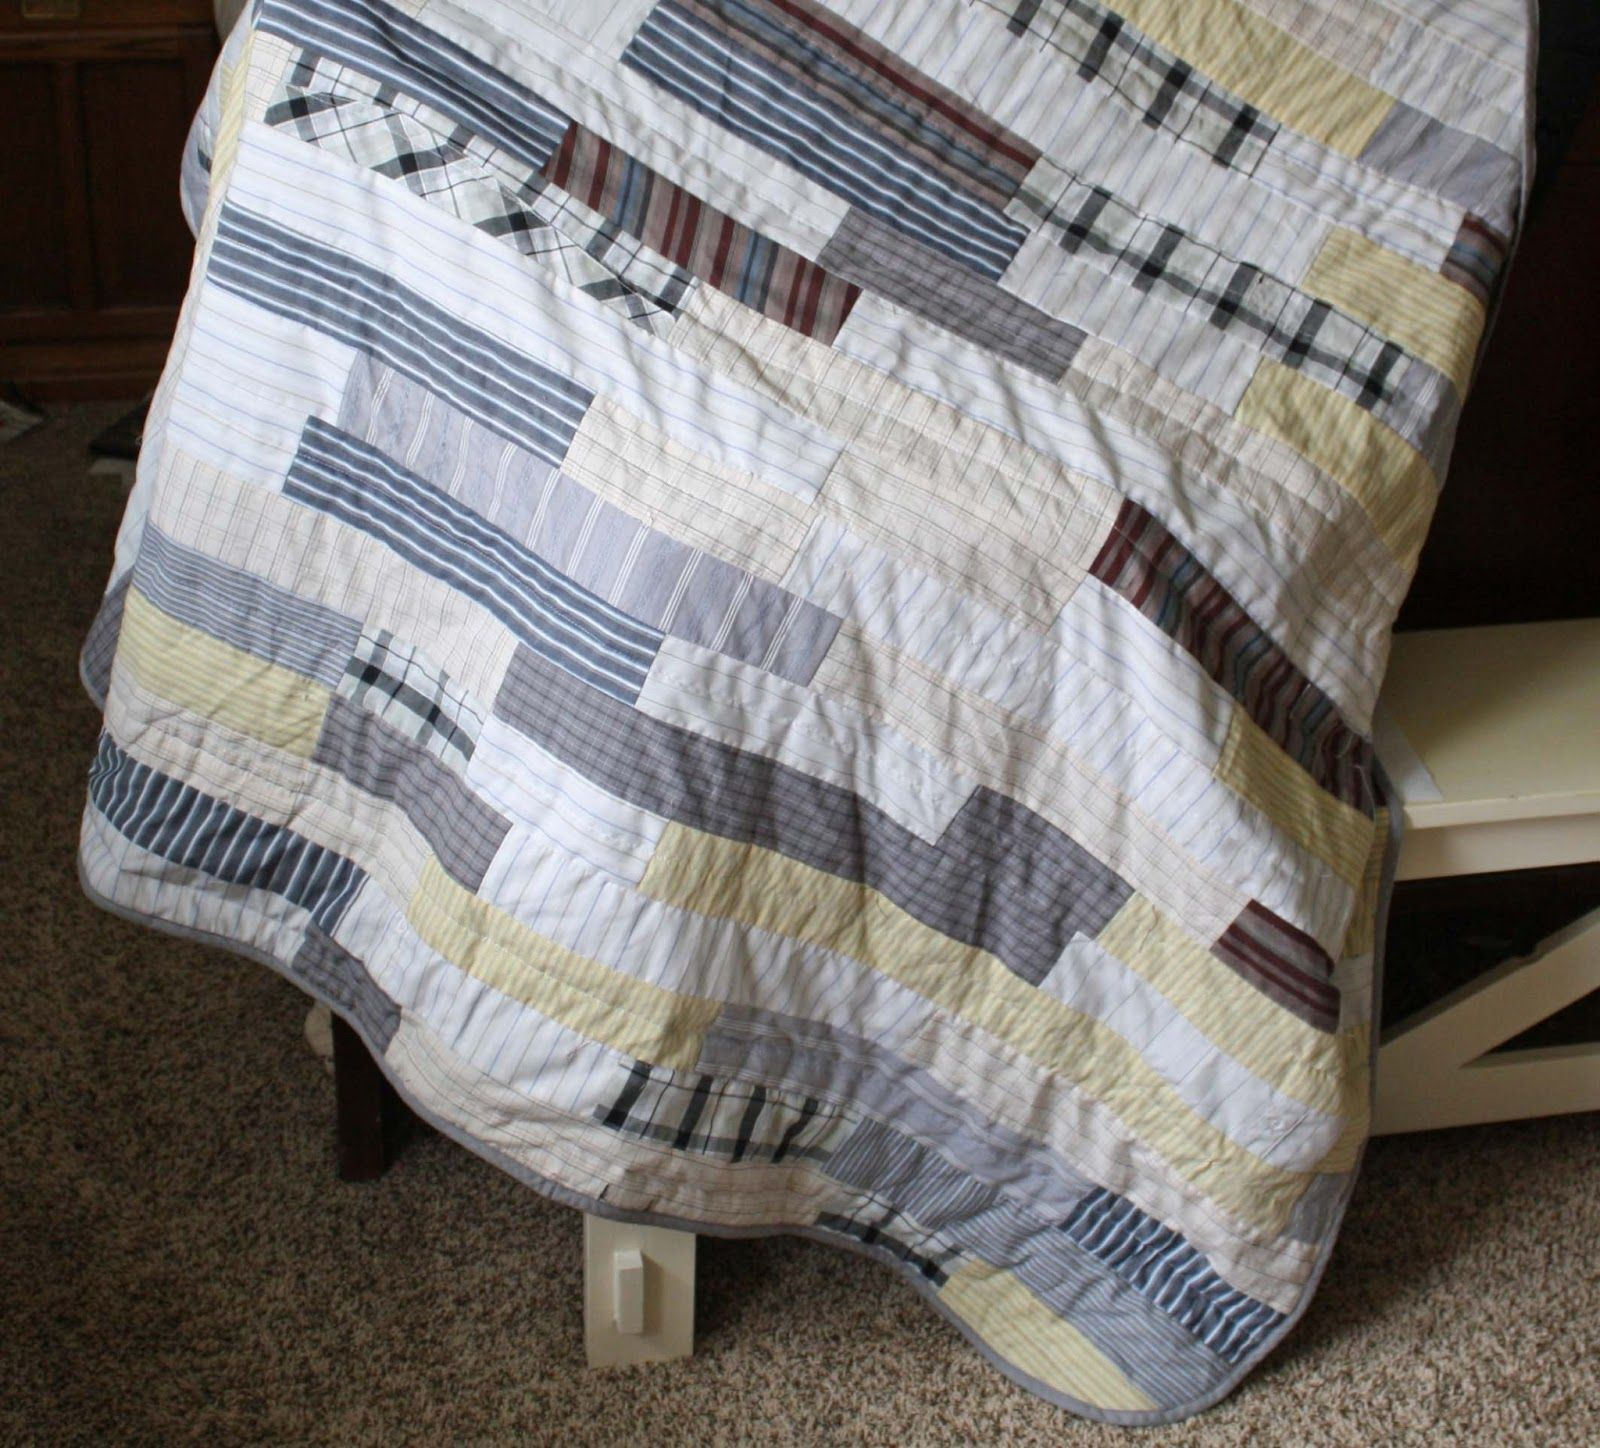 curves photo lovely curved man quilt rob quilts appell of with sewing x youtube piecing quilting